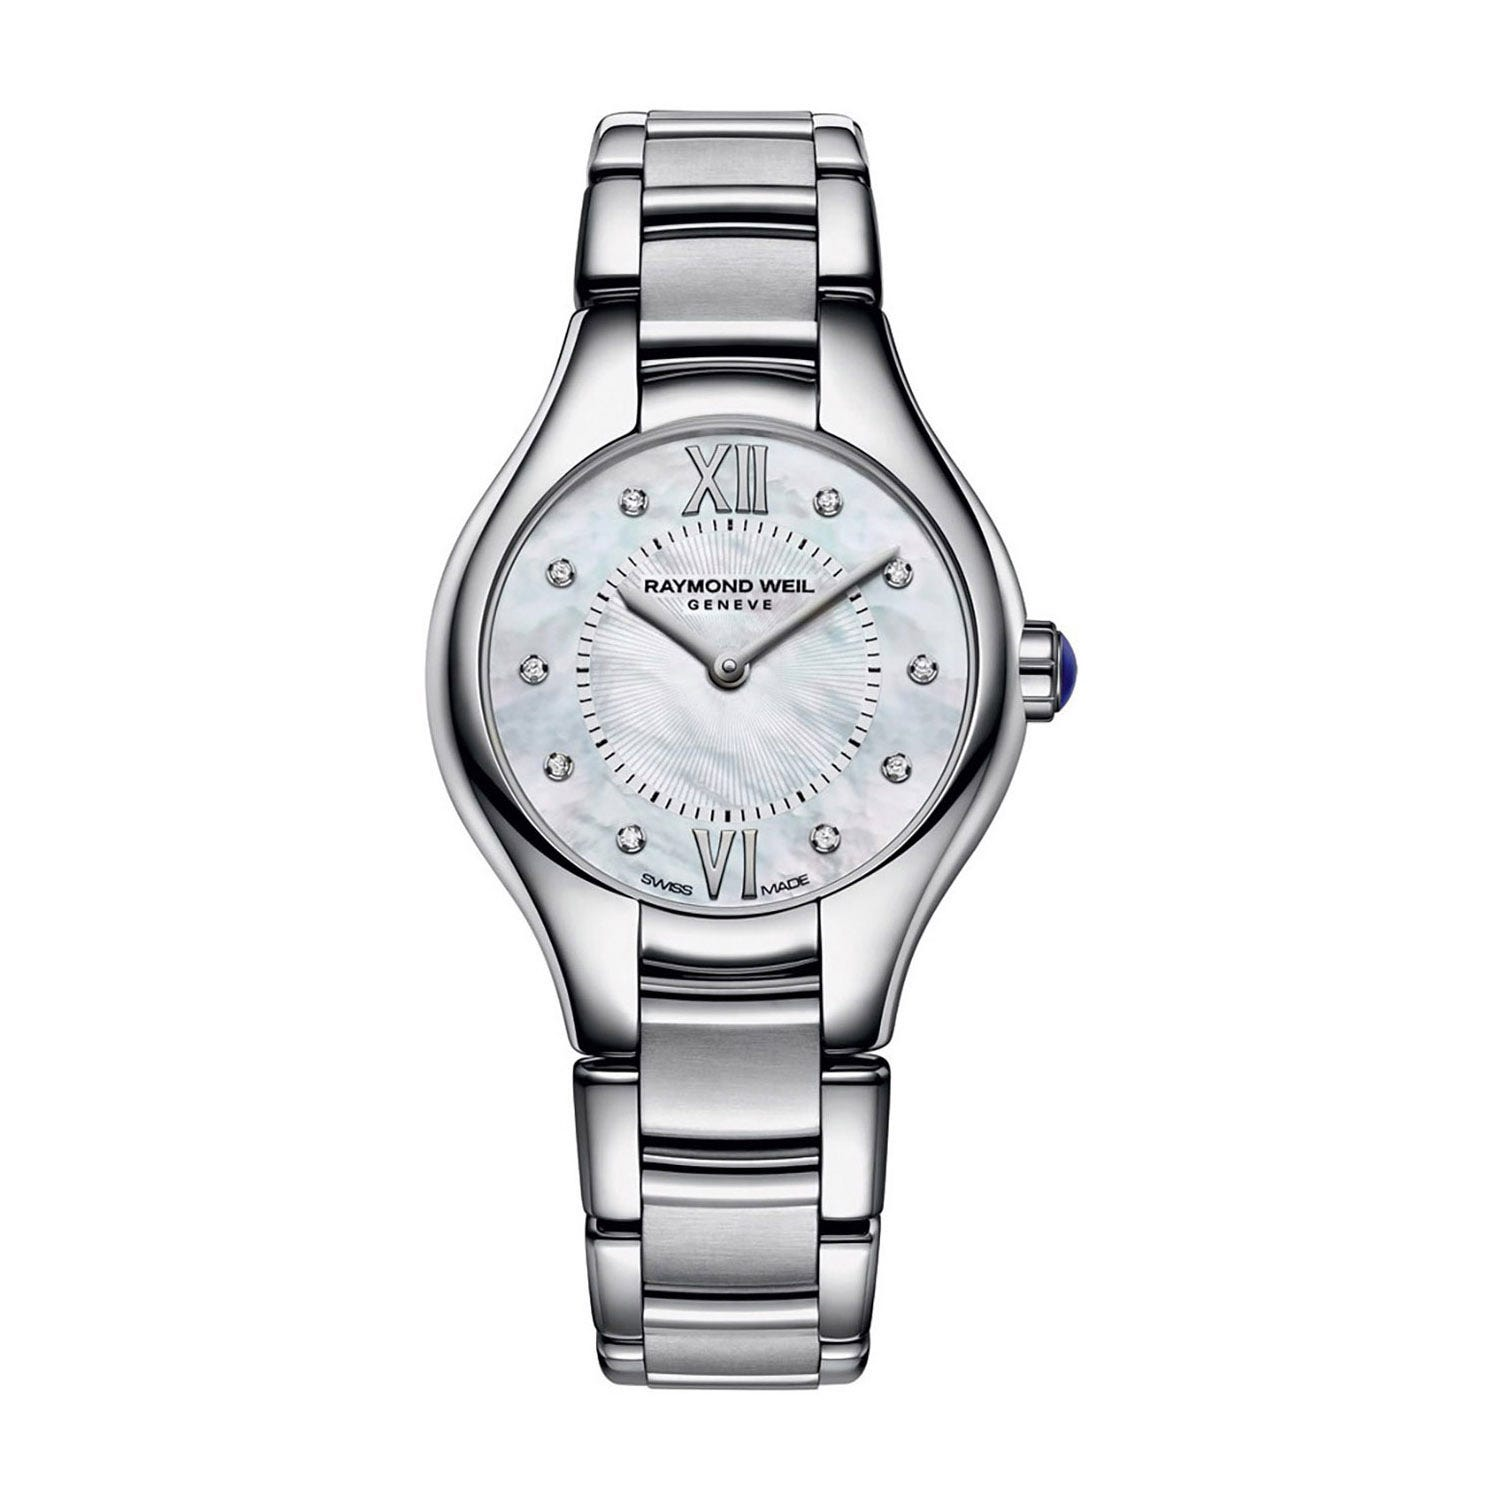 Raymond Weil Noemia ladies' diamond dot mother of pearl dial stainless steel bracelet watch